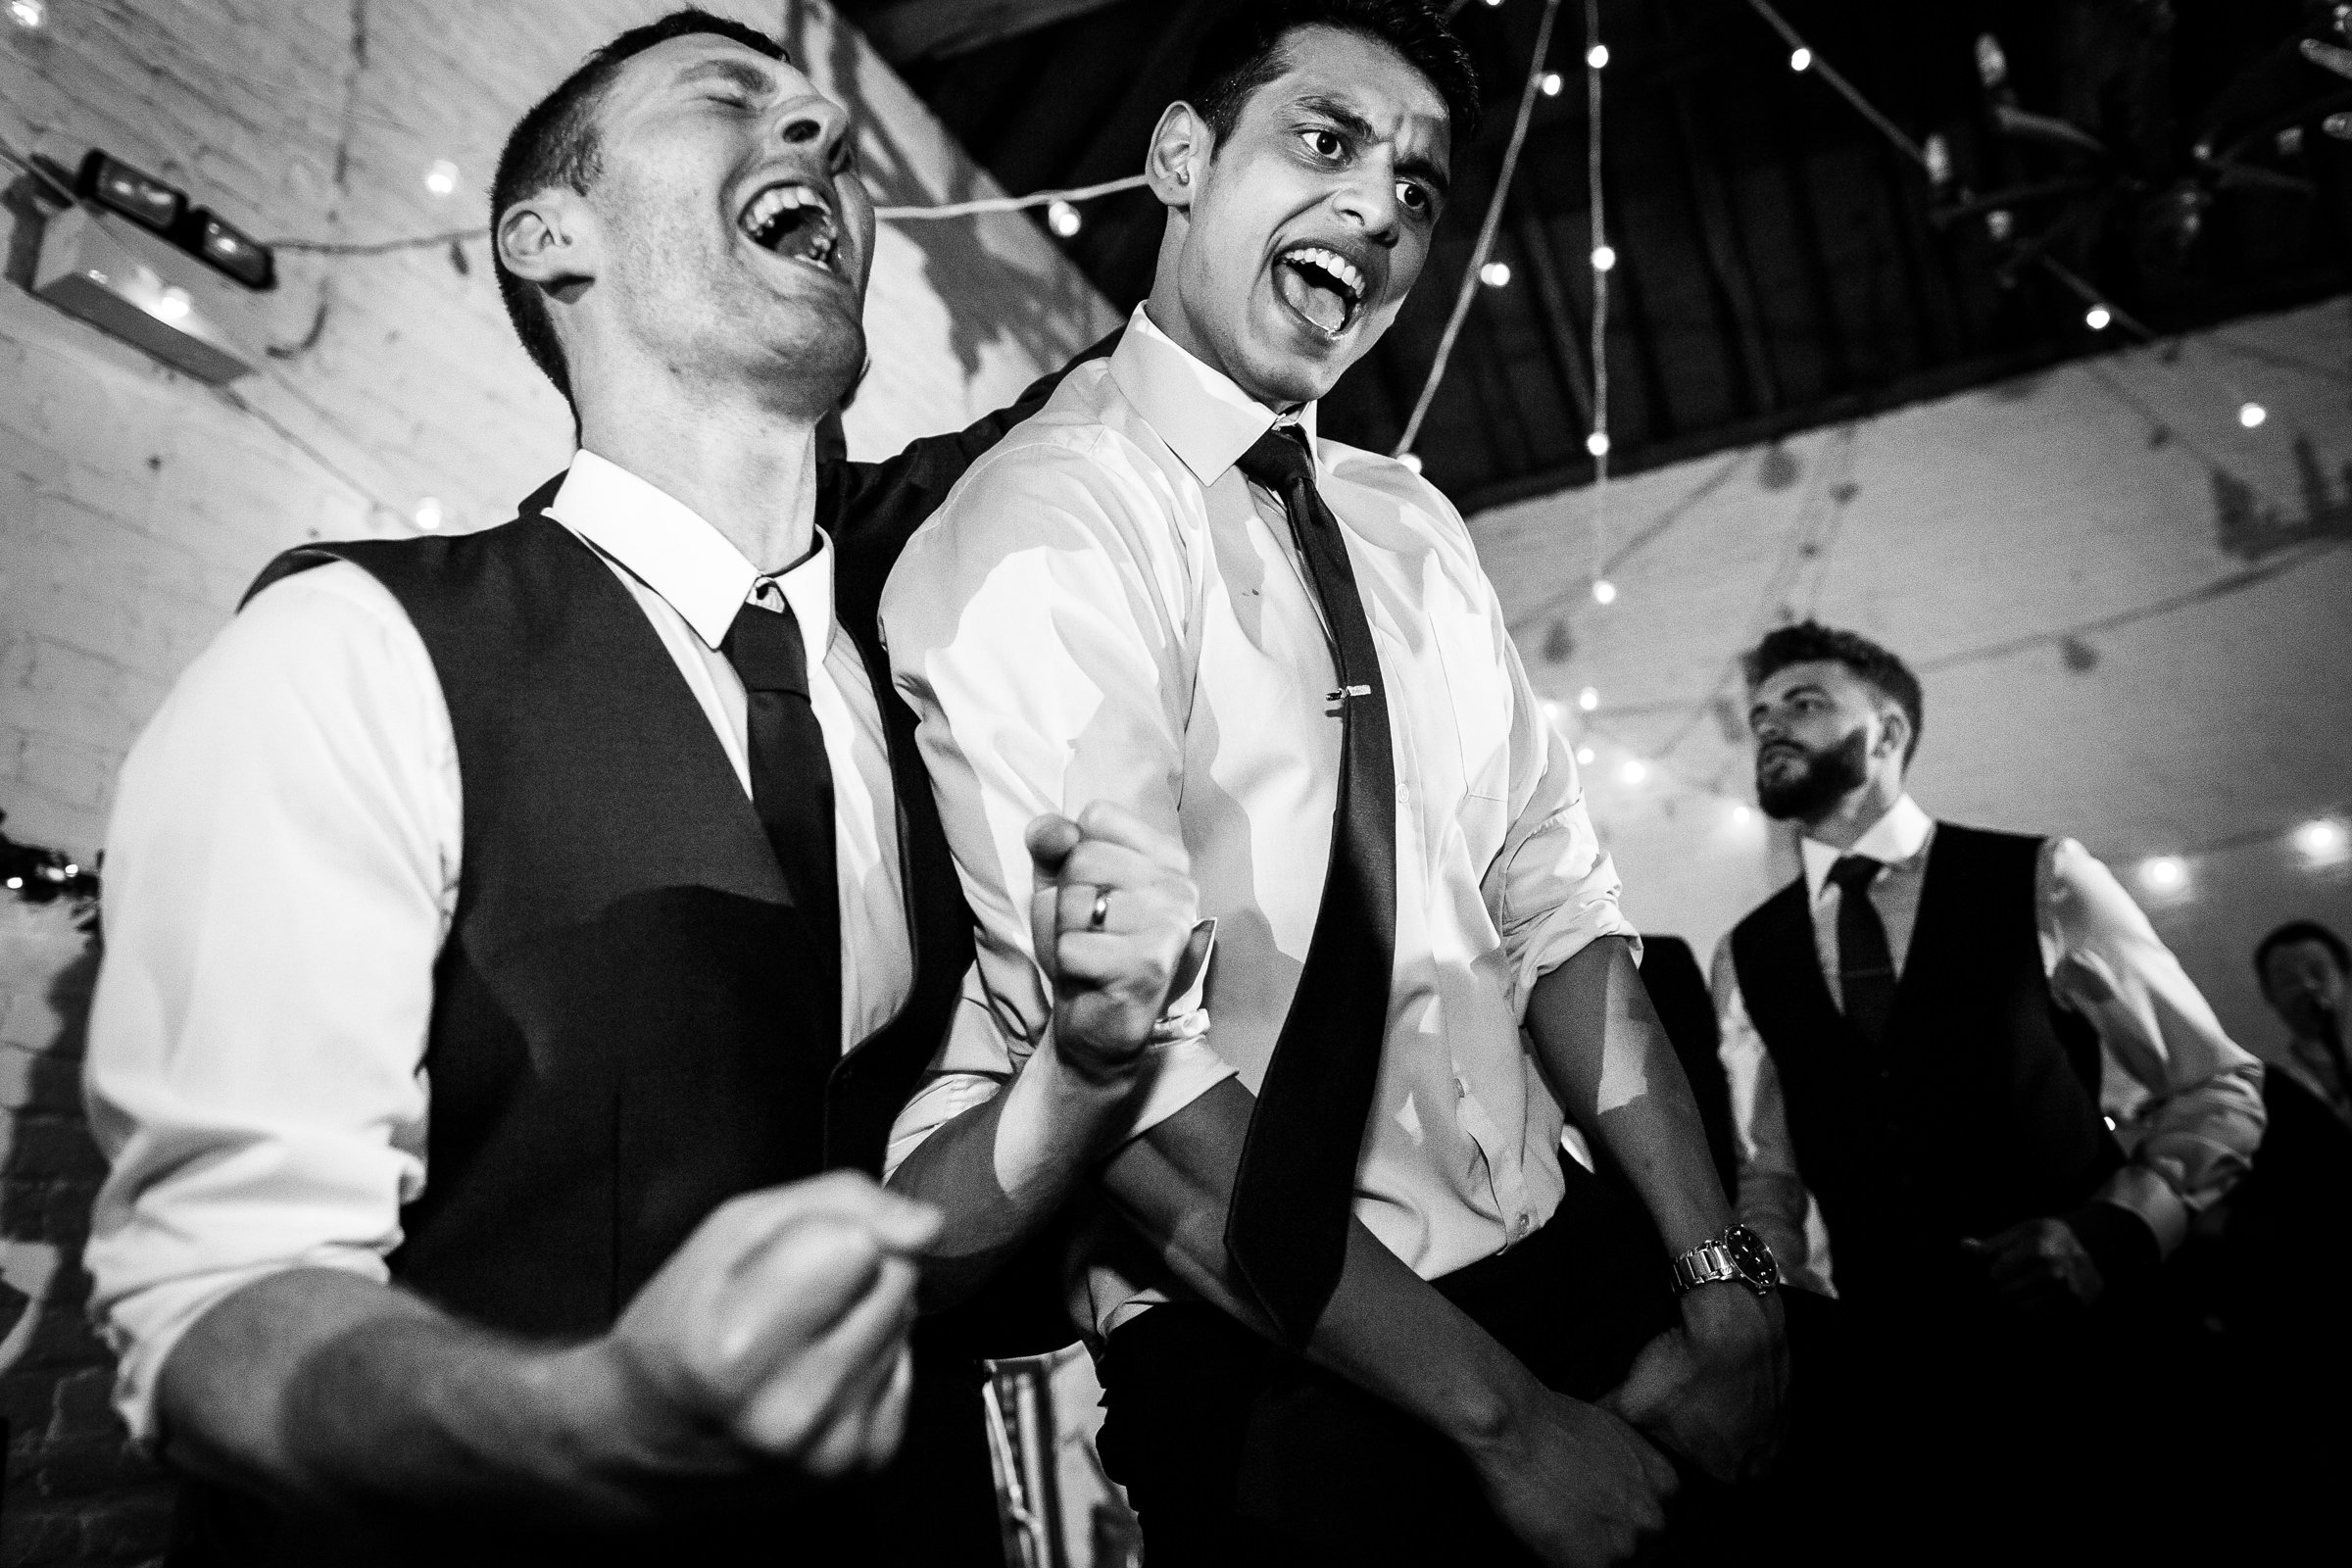 Fun dancing wedding photo